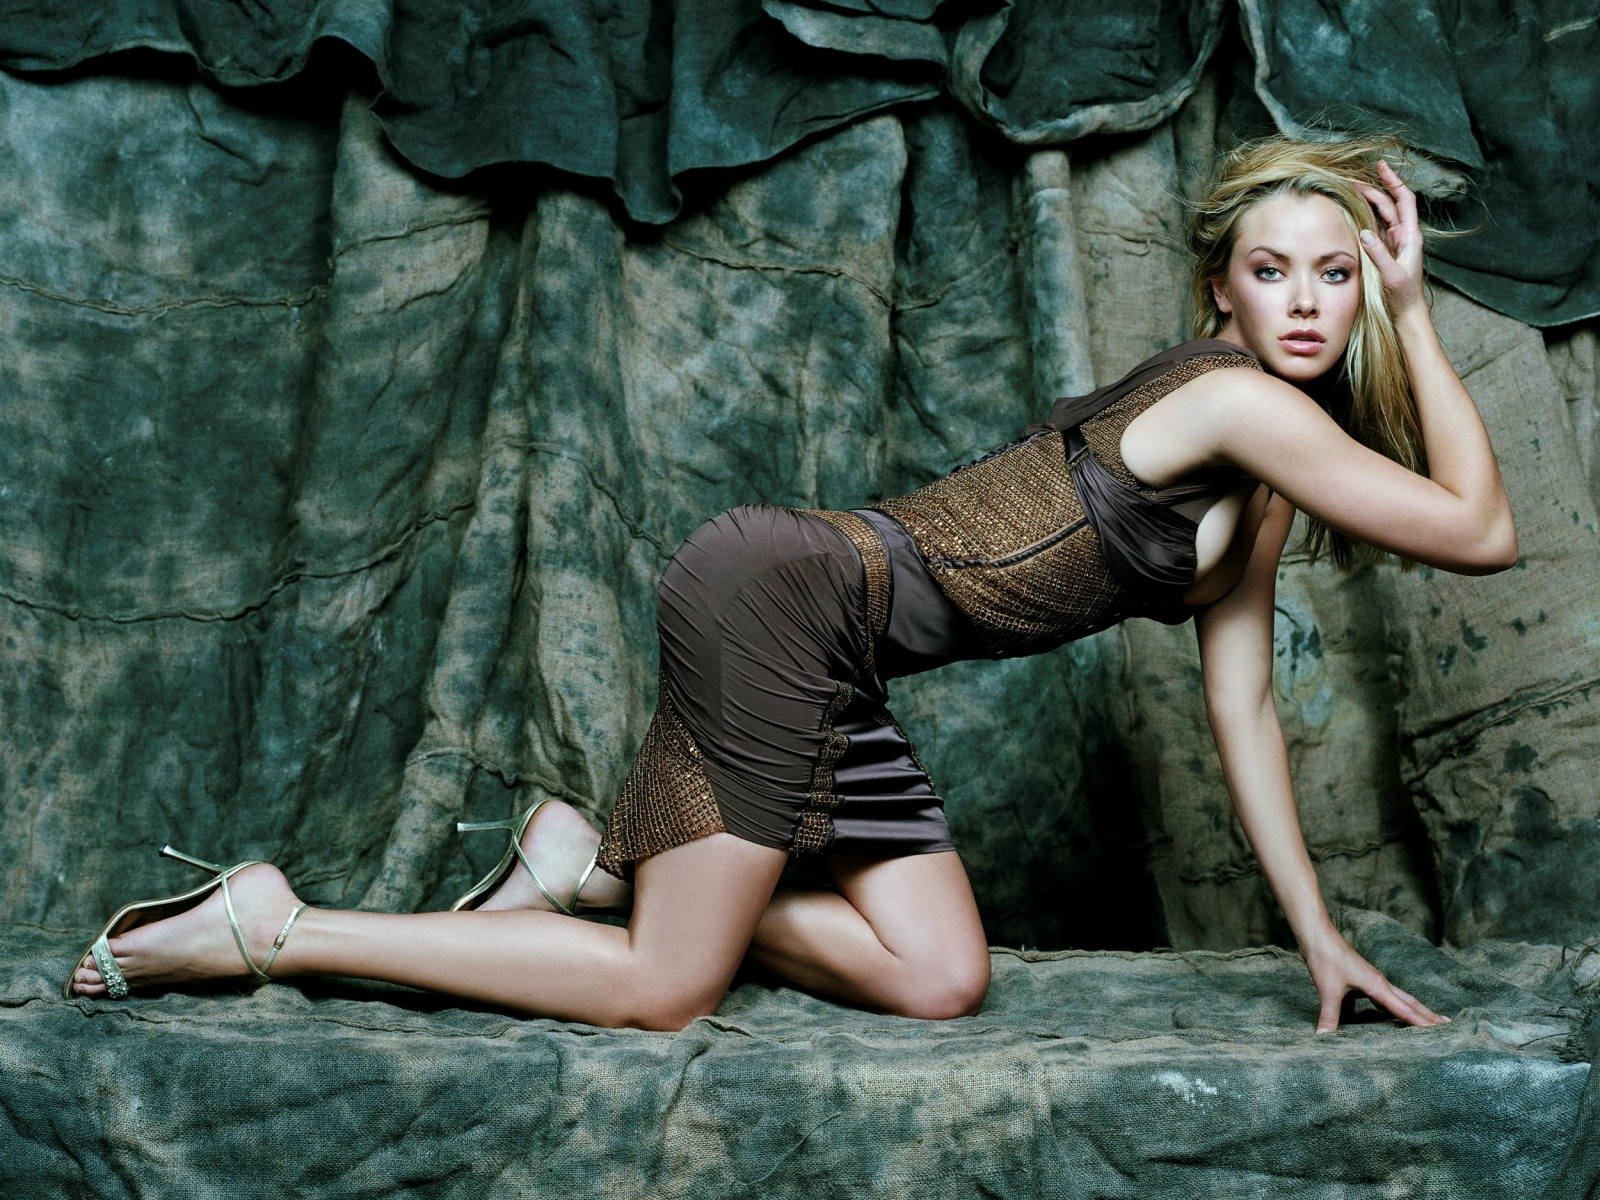 Hot wallpaper wallpapers for free download about 3074 wallpapers kristanna loken hot wallpaper kristanna loken female celebrities voltagebd Image collections